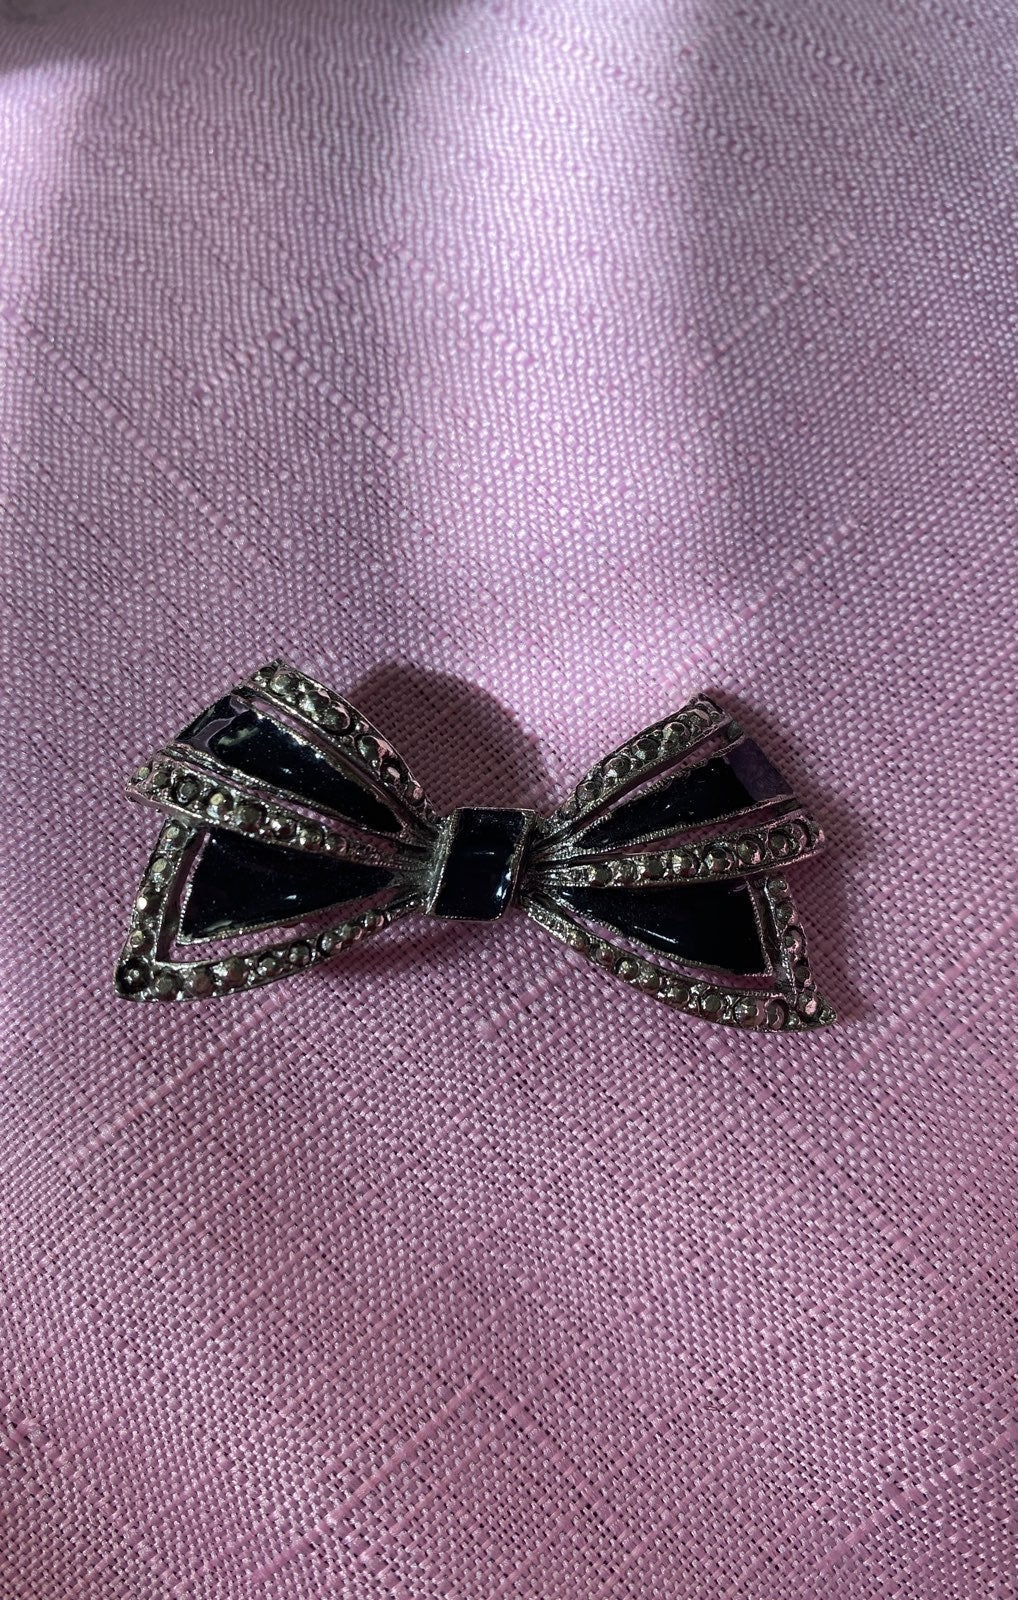 Brooch with bowtie